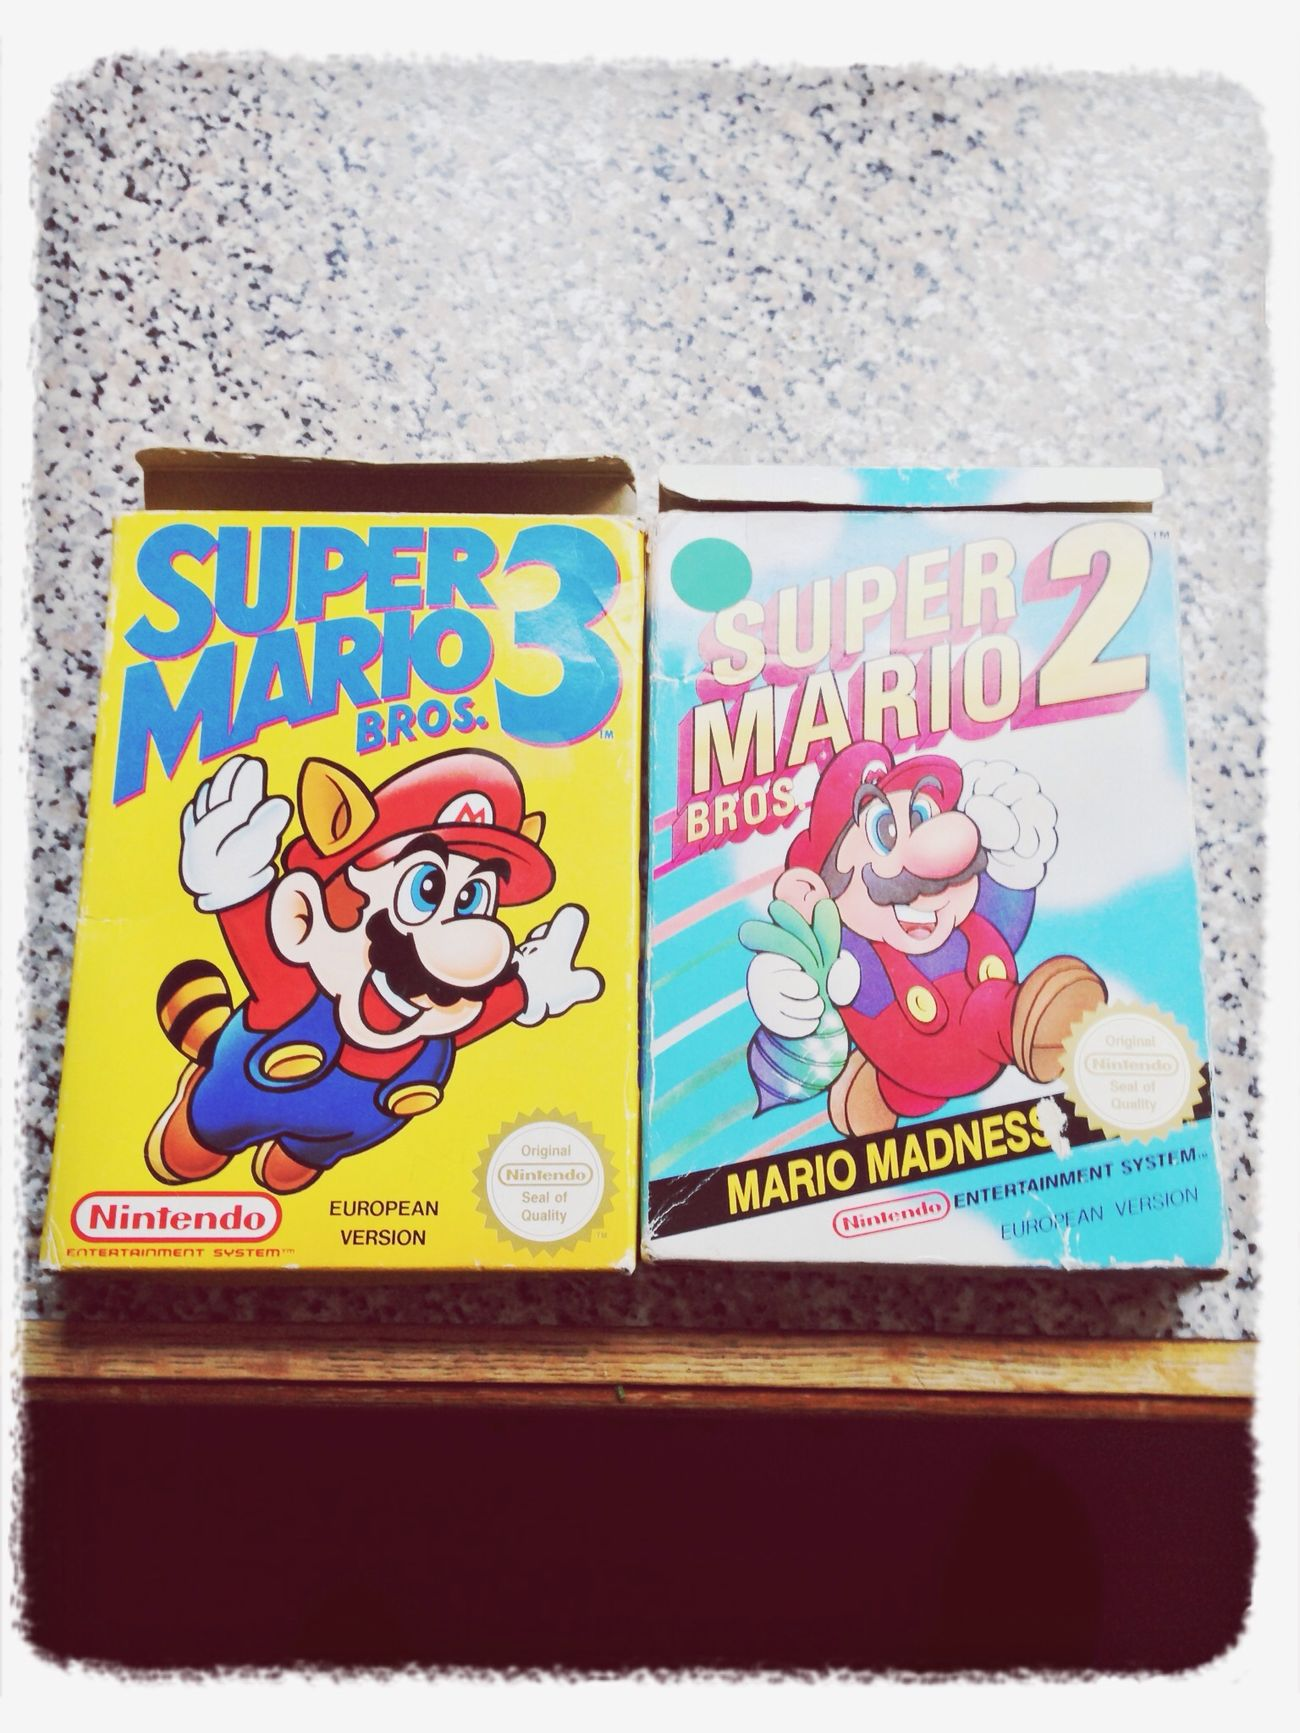 My SMB collection is now complete. Nes Cib Super Mario Bros.